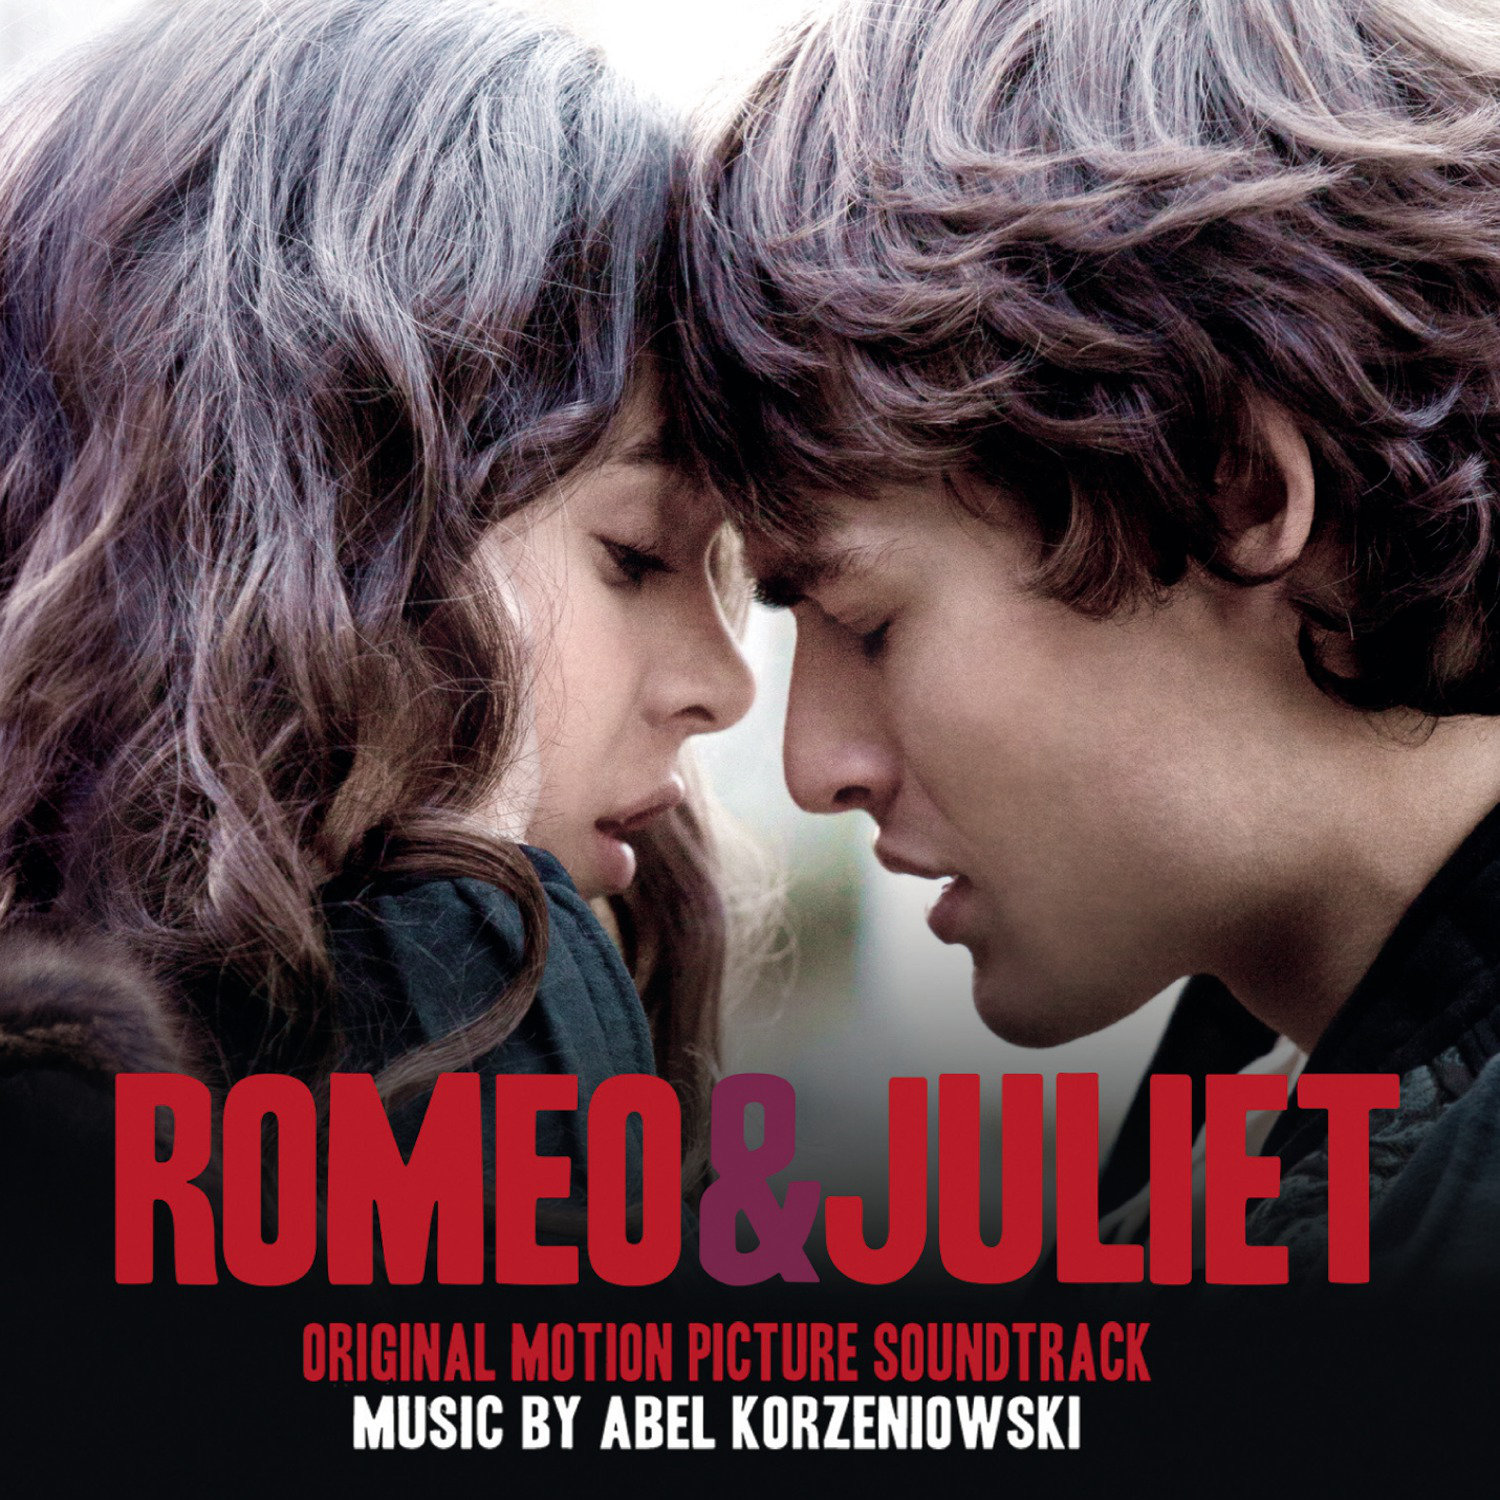 romeo an juliet Romeo and juliet (russian: ромео и джульетта), op 64, is a ballet by sergei prokofiev based on william shakespeare's play romeo and julietprokofiev reused music from the ballet in three suites for orchestra and a solo piano work.